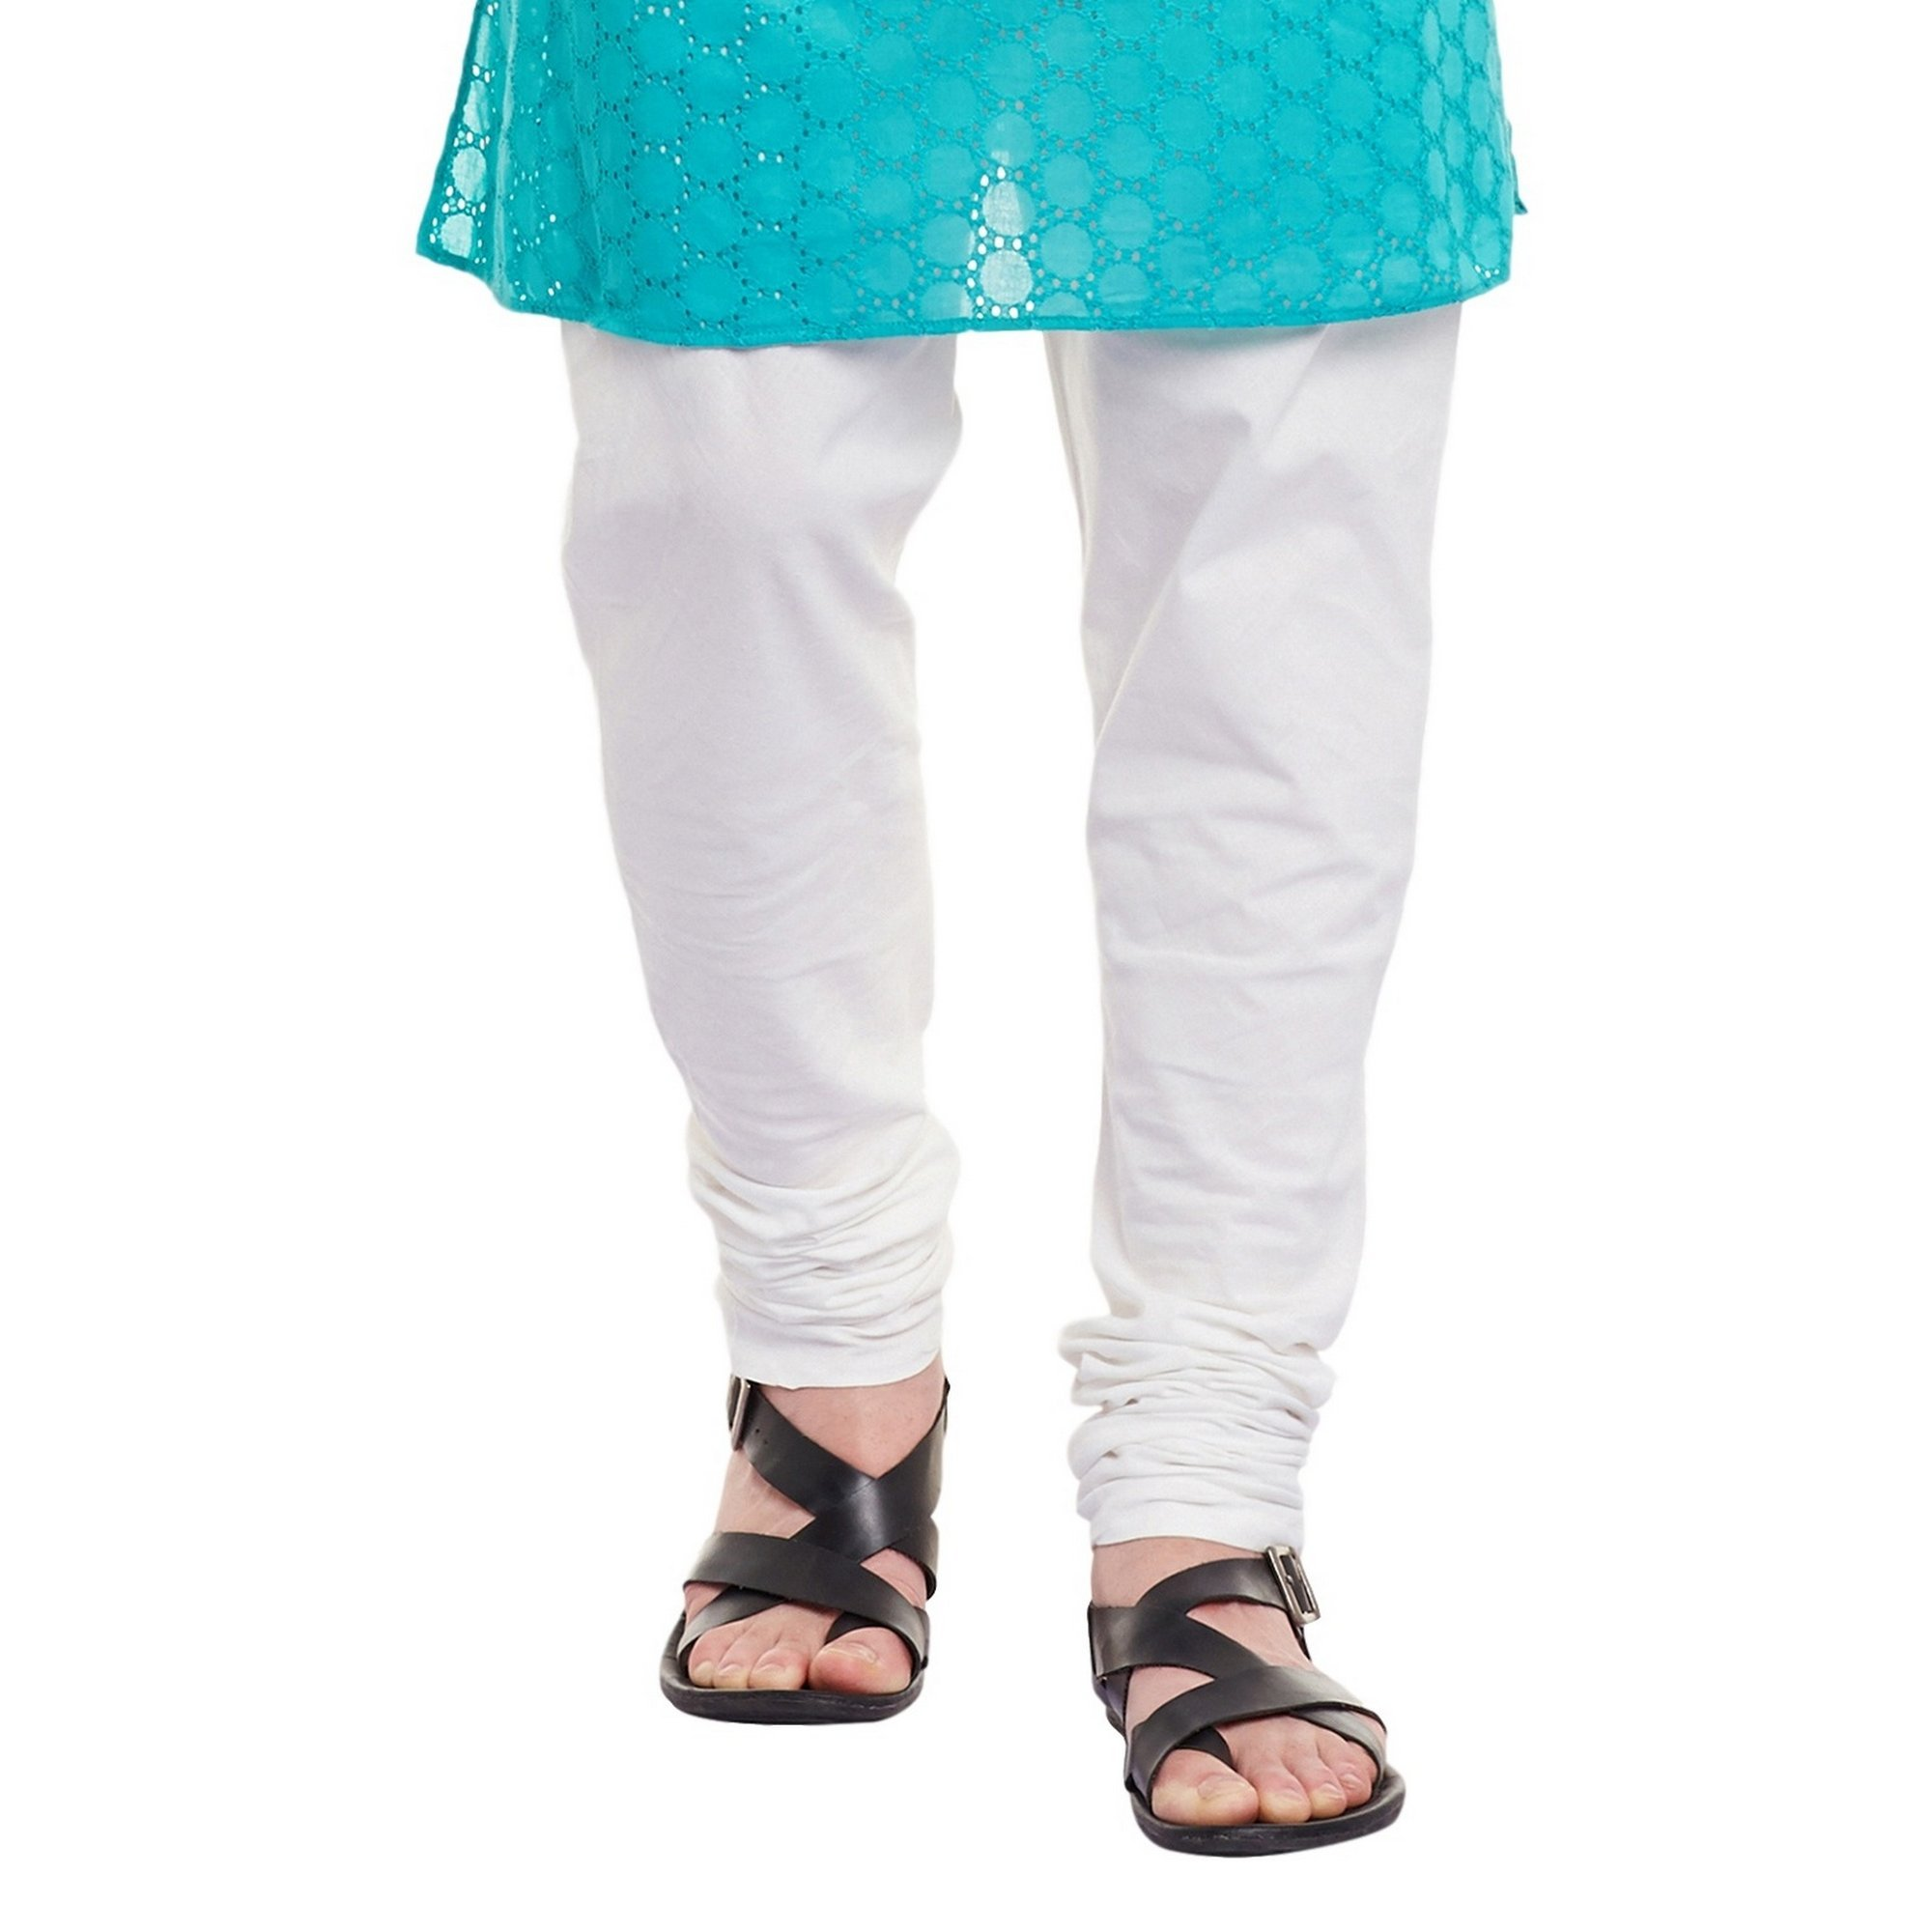 Mens Embroidered Cutwork Cotton Kurta With Churidar Pajama Trousers Machine Embroidery,Turquoise Chest Size: 34 Inch by ShalinIndia (Image #6)